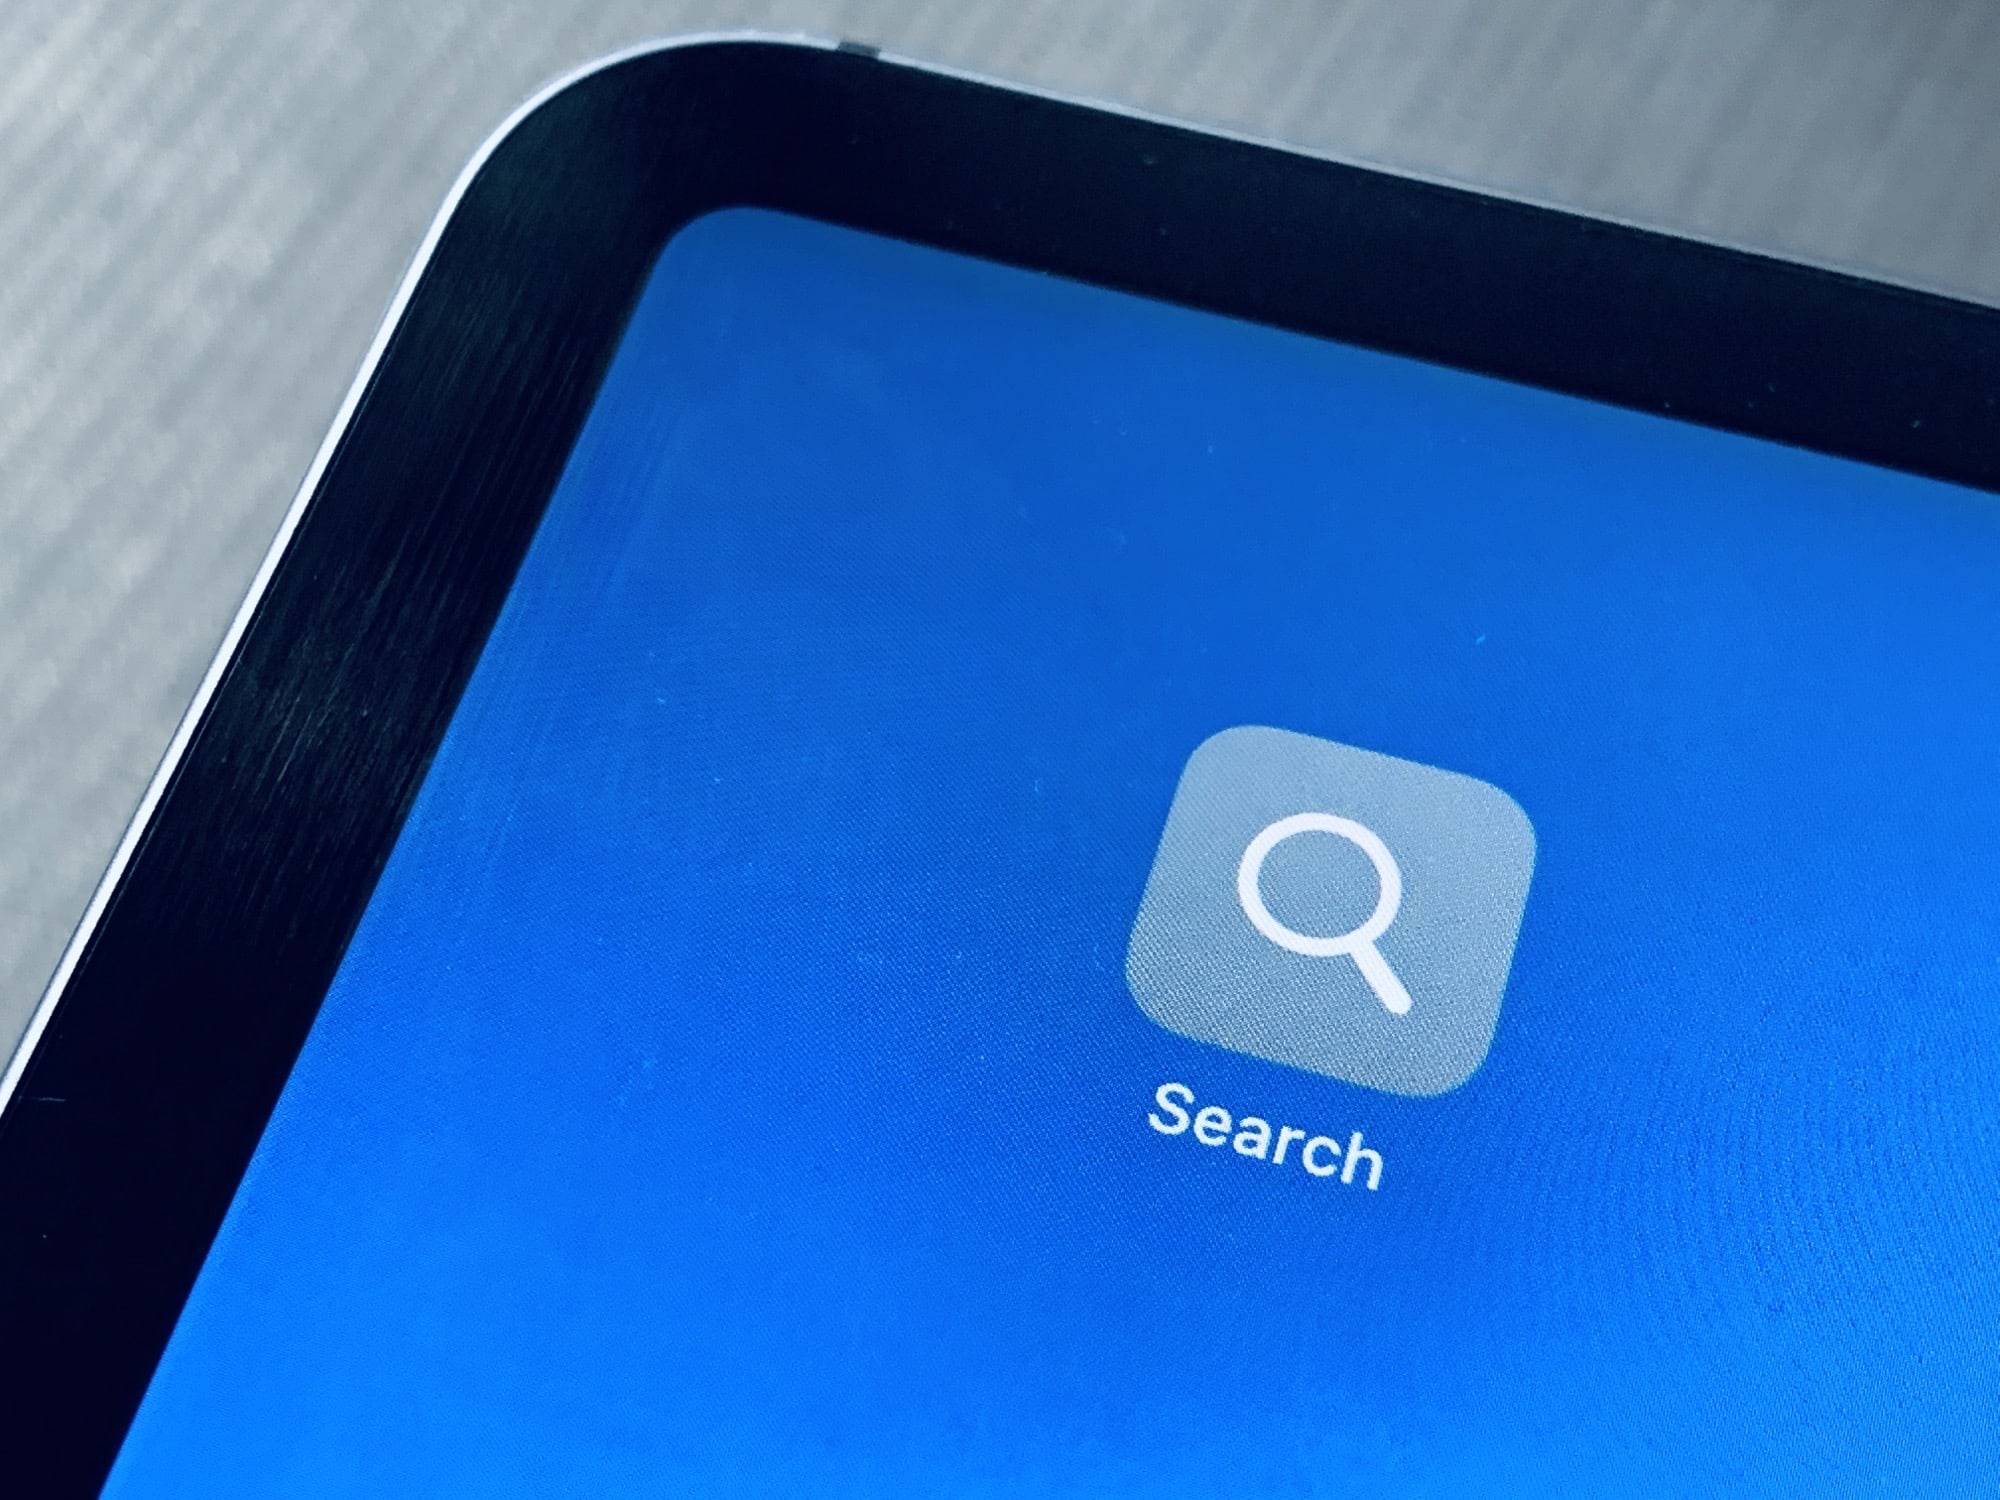 Add a custom search button to your Home screen on iPhone or iPad.